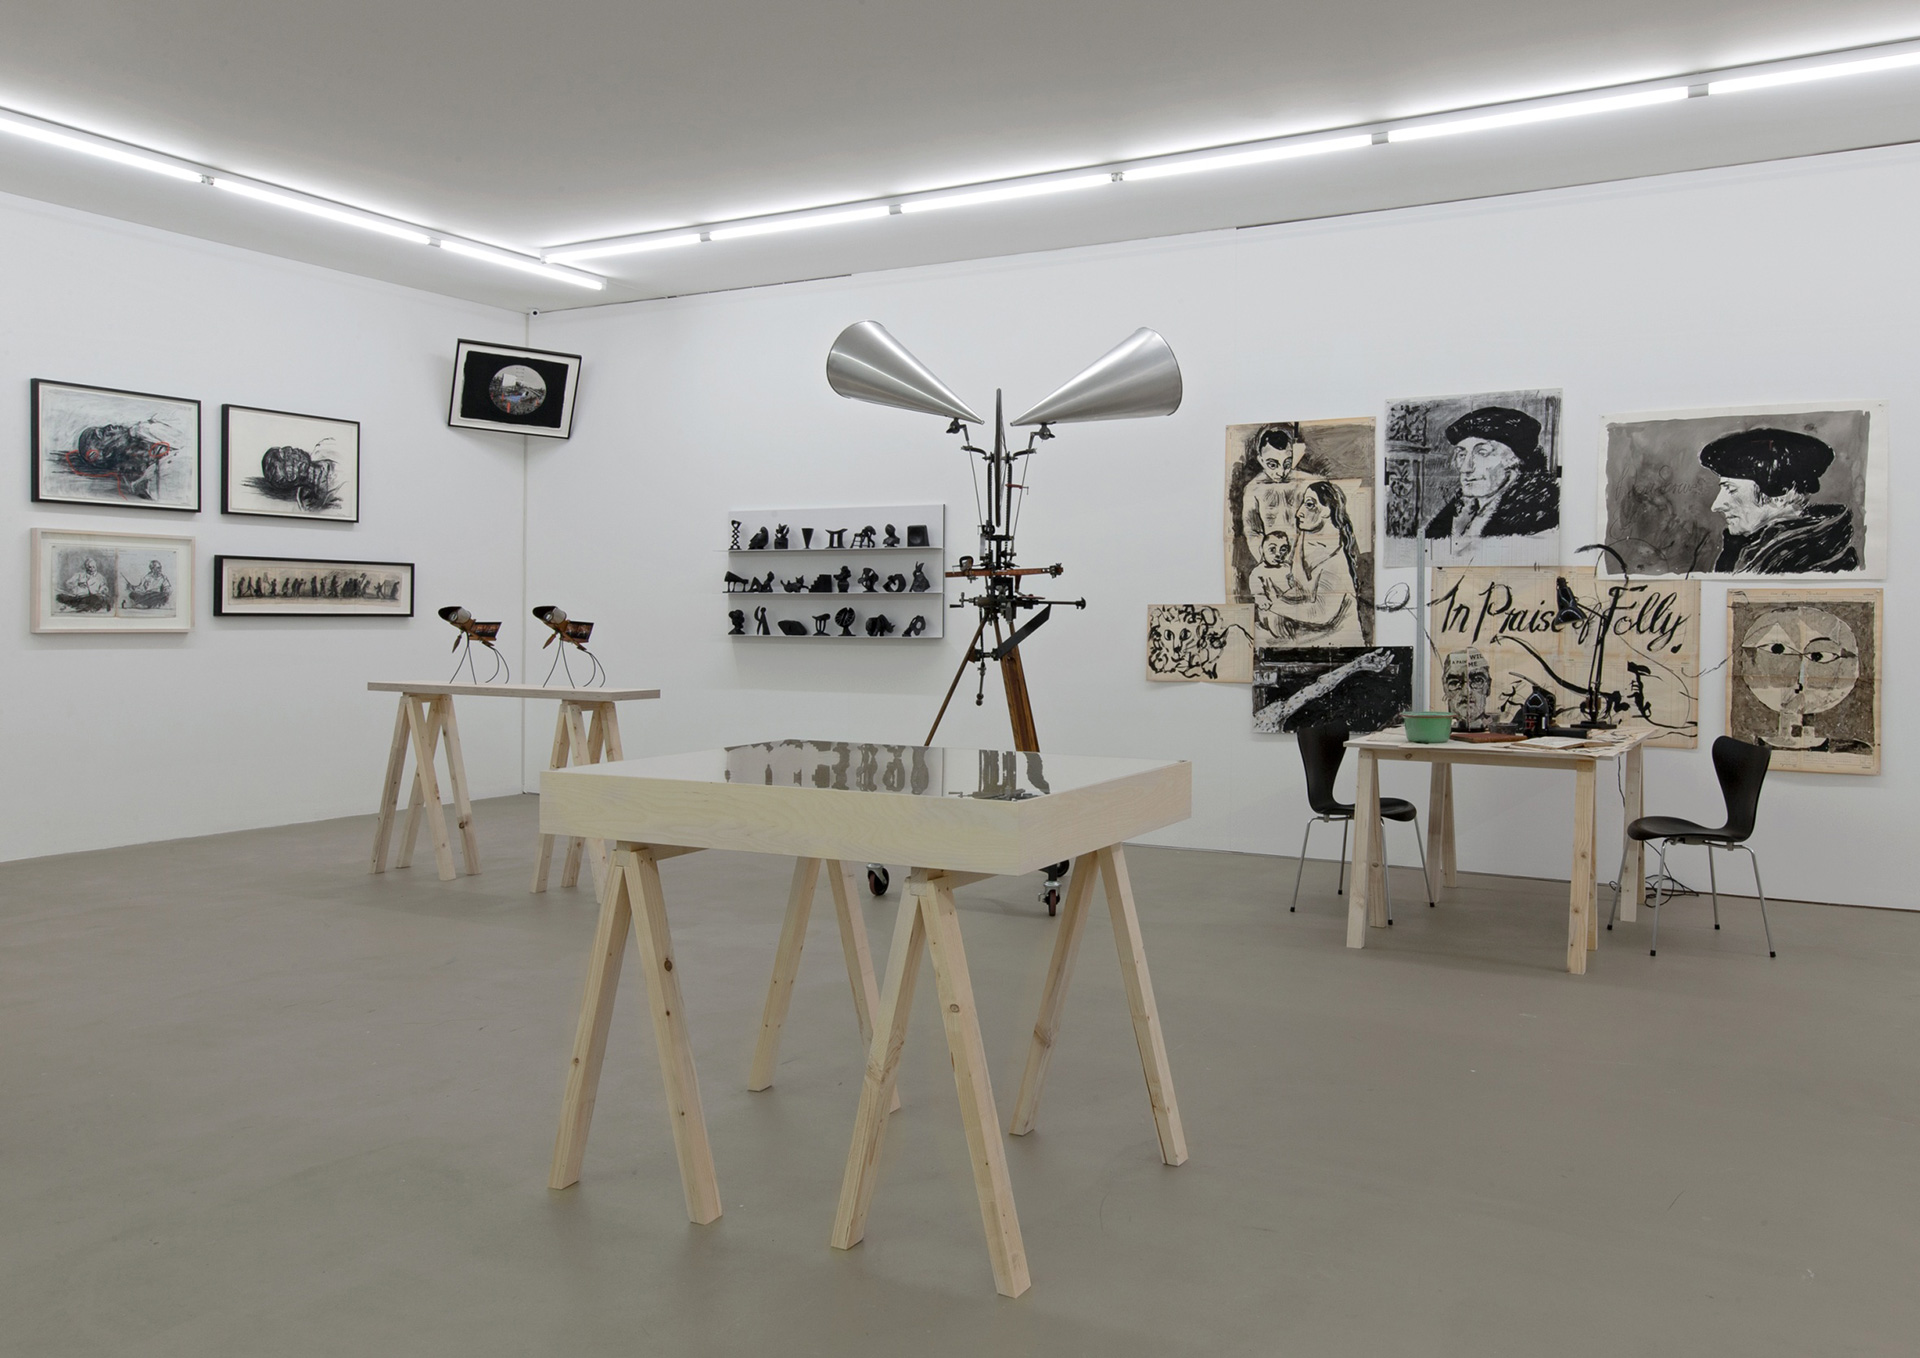 Studioroom, 1994-2018, include reconstruction of studio set for Drawing Lesson 50: Learning from the Old Masters (In Praise of Folly), 2018| A Poem That Is Not Our Own| William Kentridge| STIR